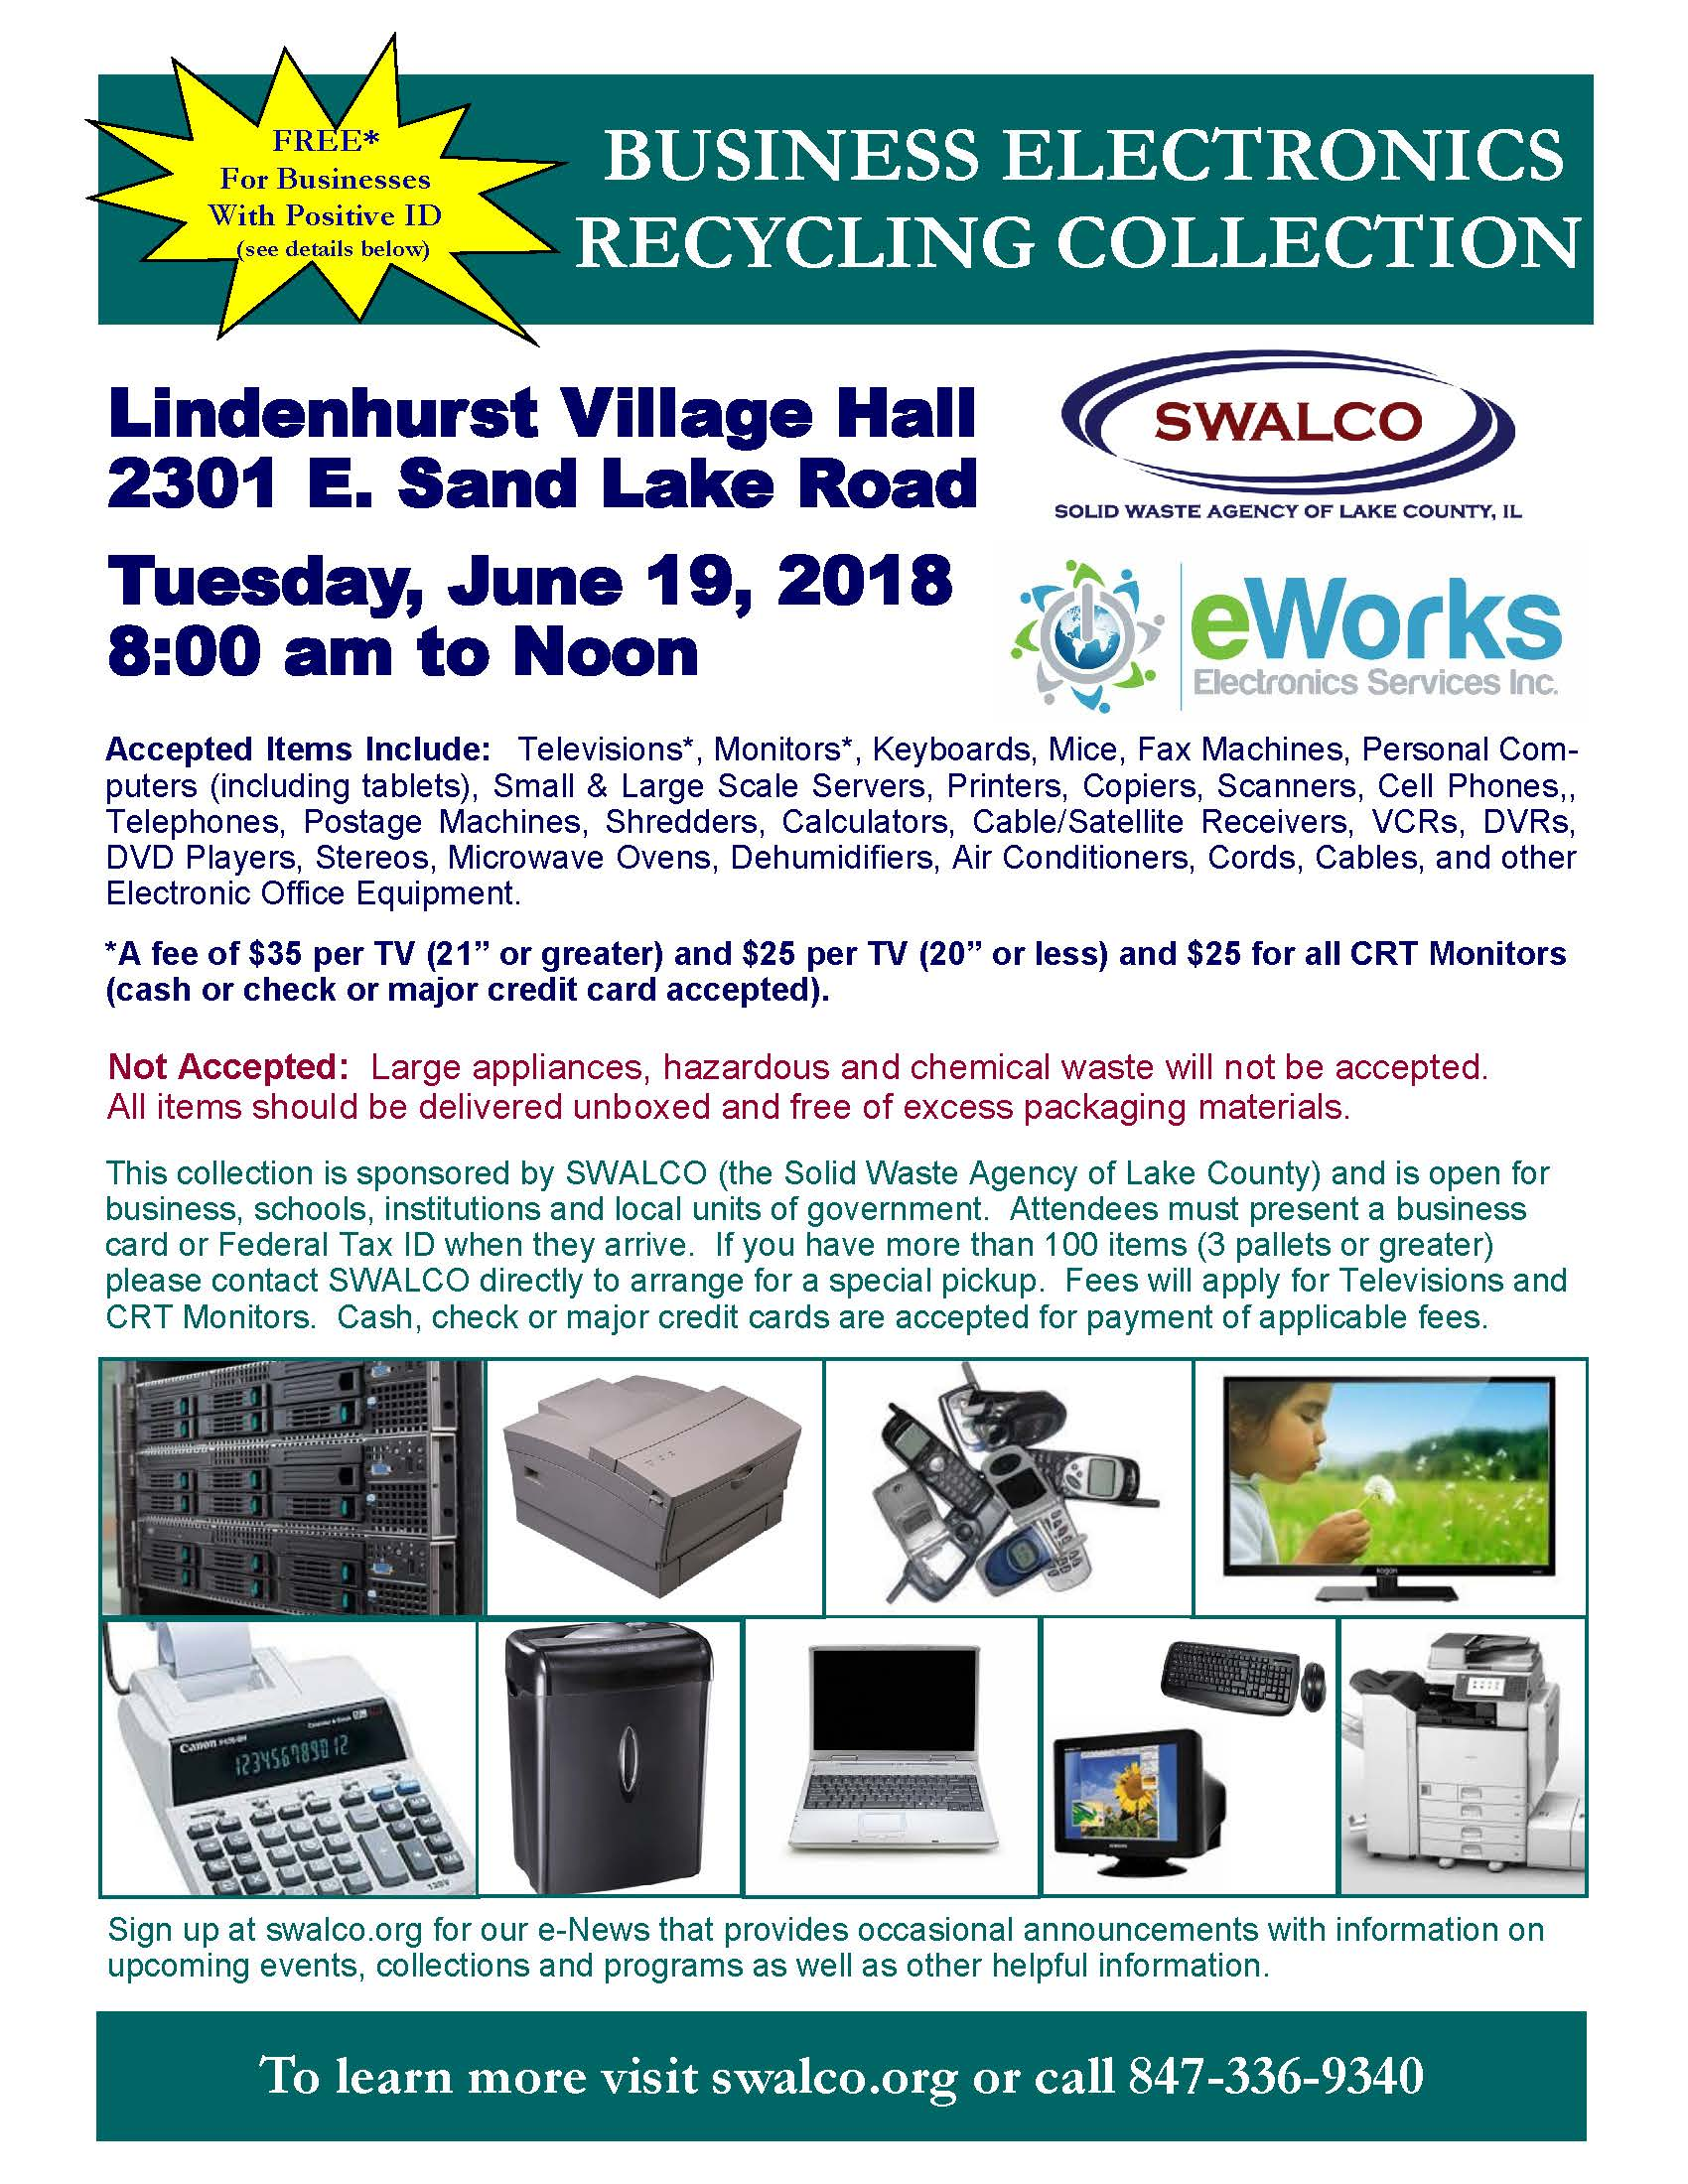 Electronics E-Works Village of Lindenhurst June 19 2018